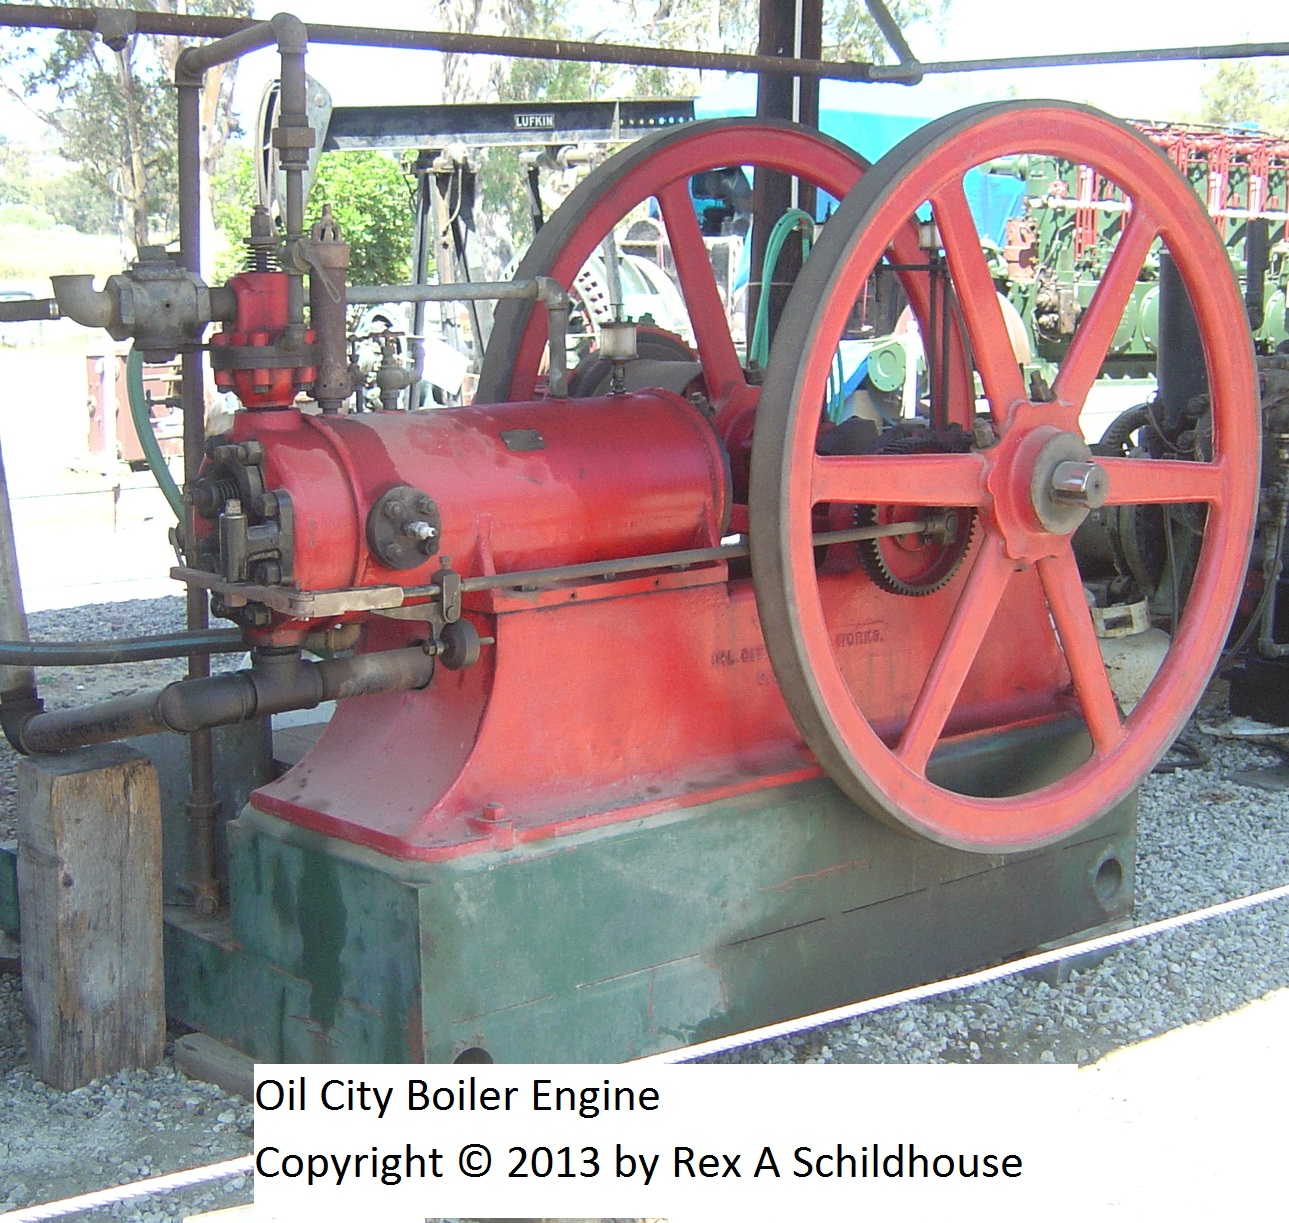 Oil City Boiler Engine